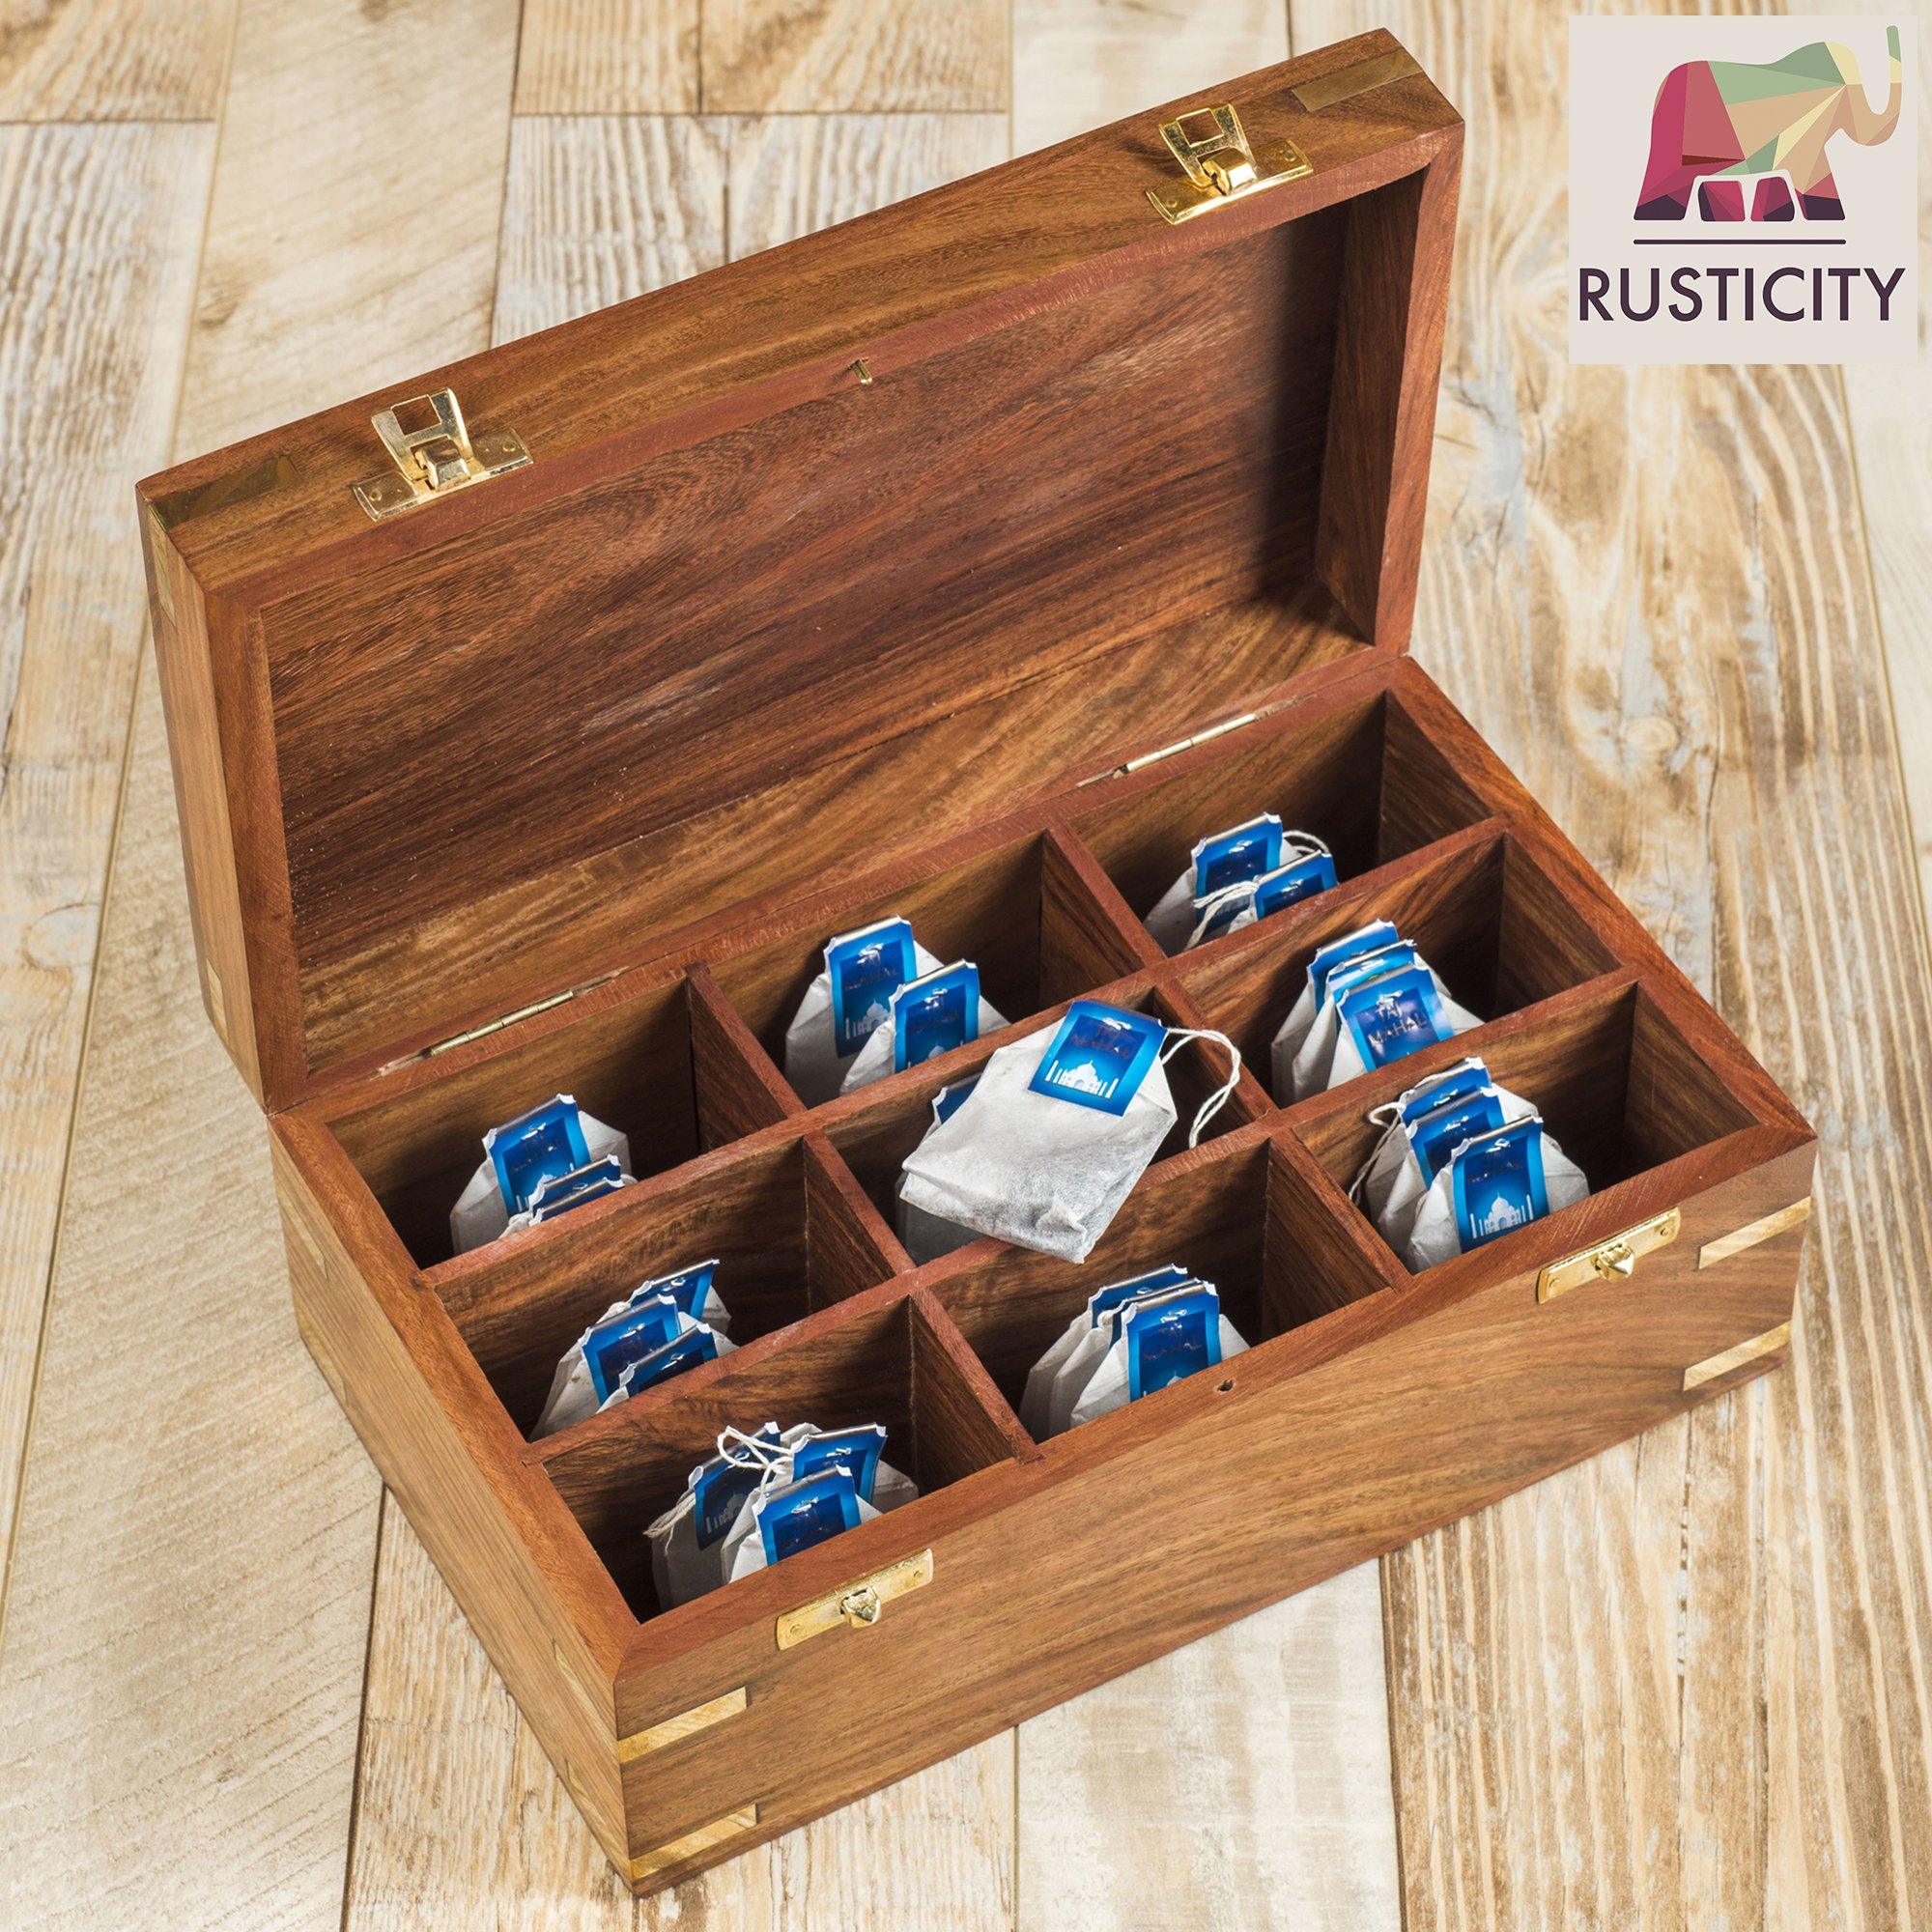 Rusticity Wood Tea Bag/Spice Storage Box with Lid and 9 pockets | Handmade | (10.2 x 6.2 x 4 in) by Rusticity (Image #8)